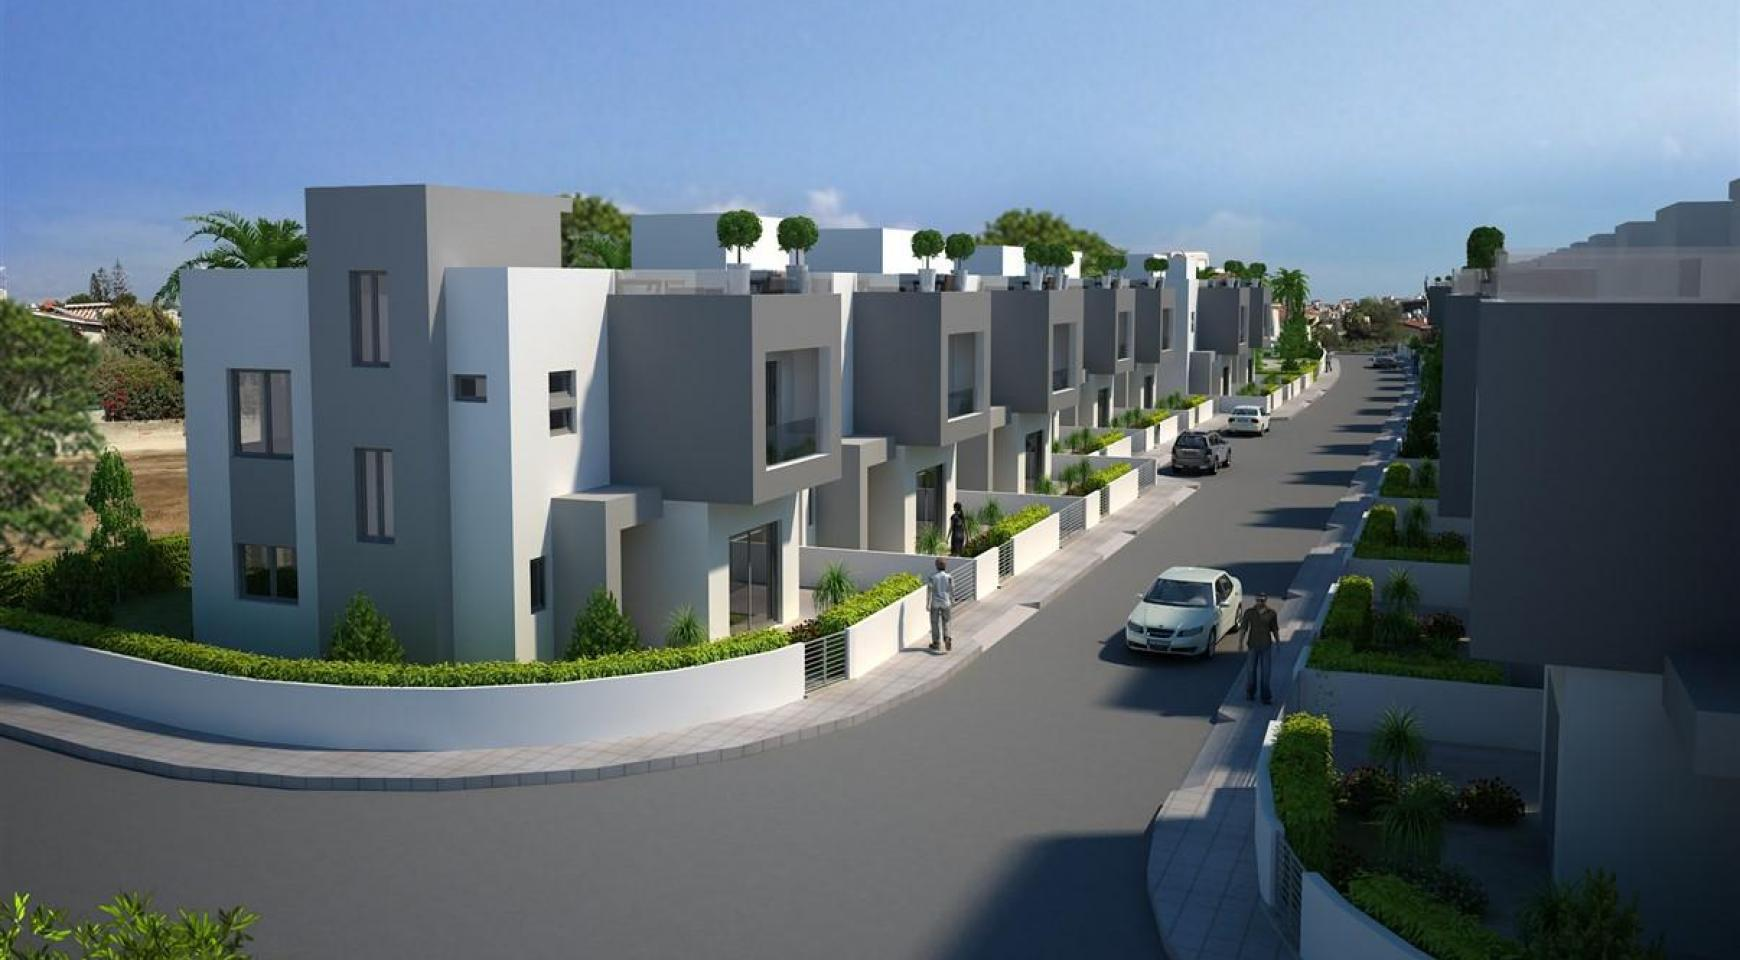 3 Bedroom Villa in a New Project - 35